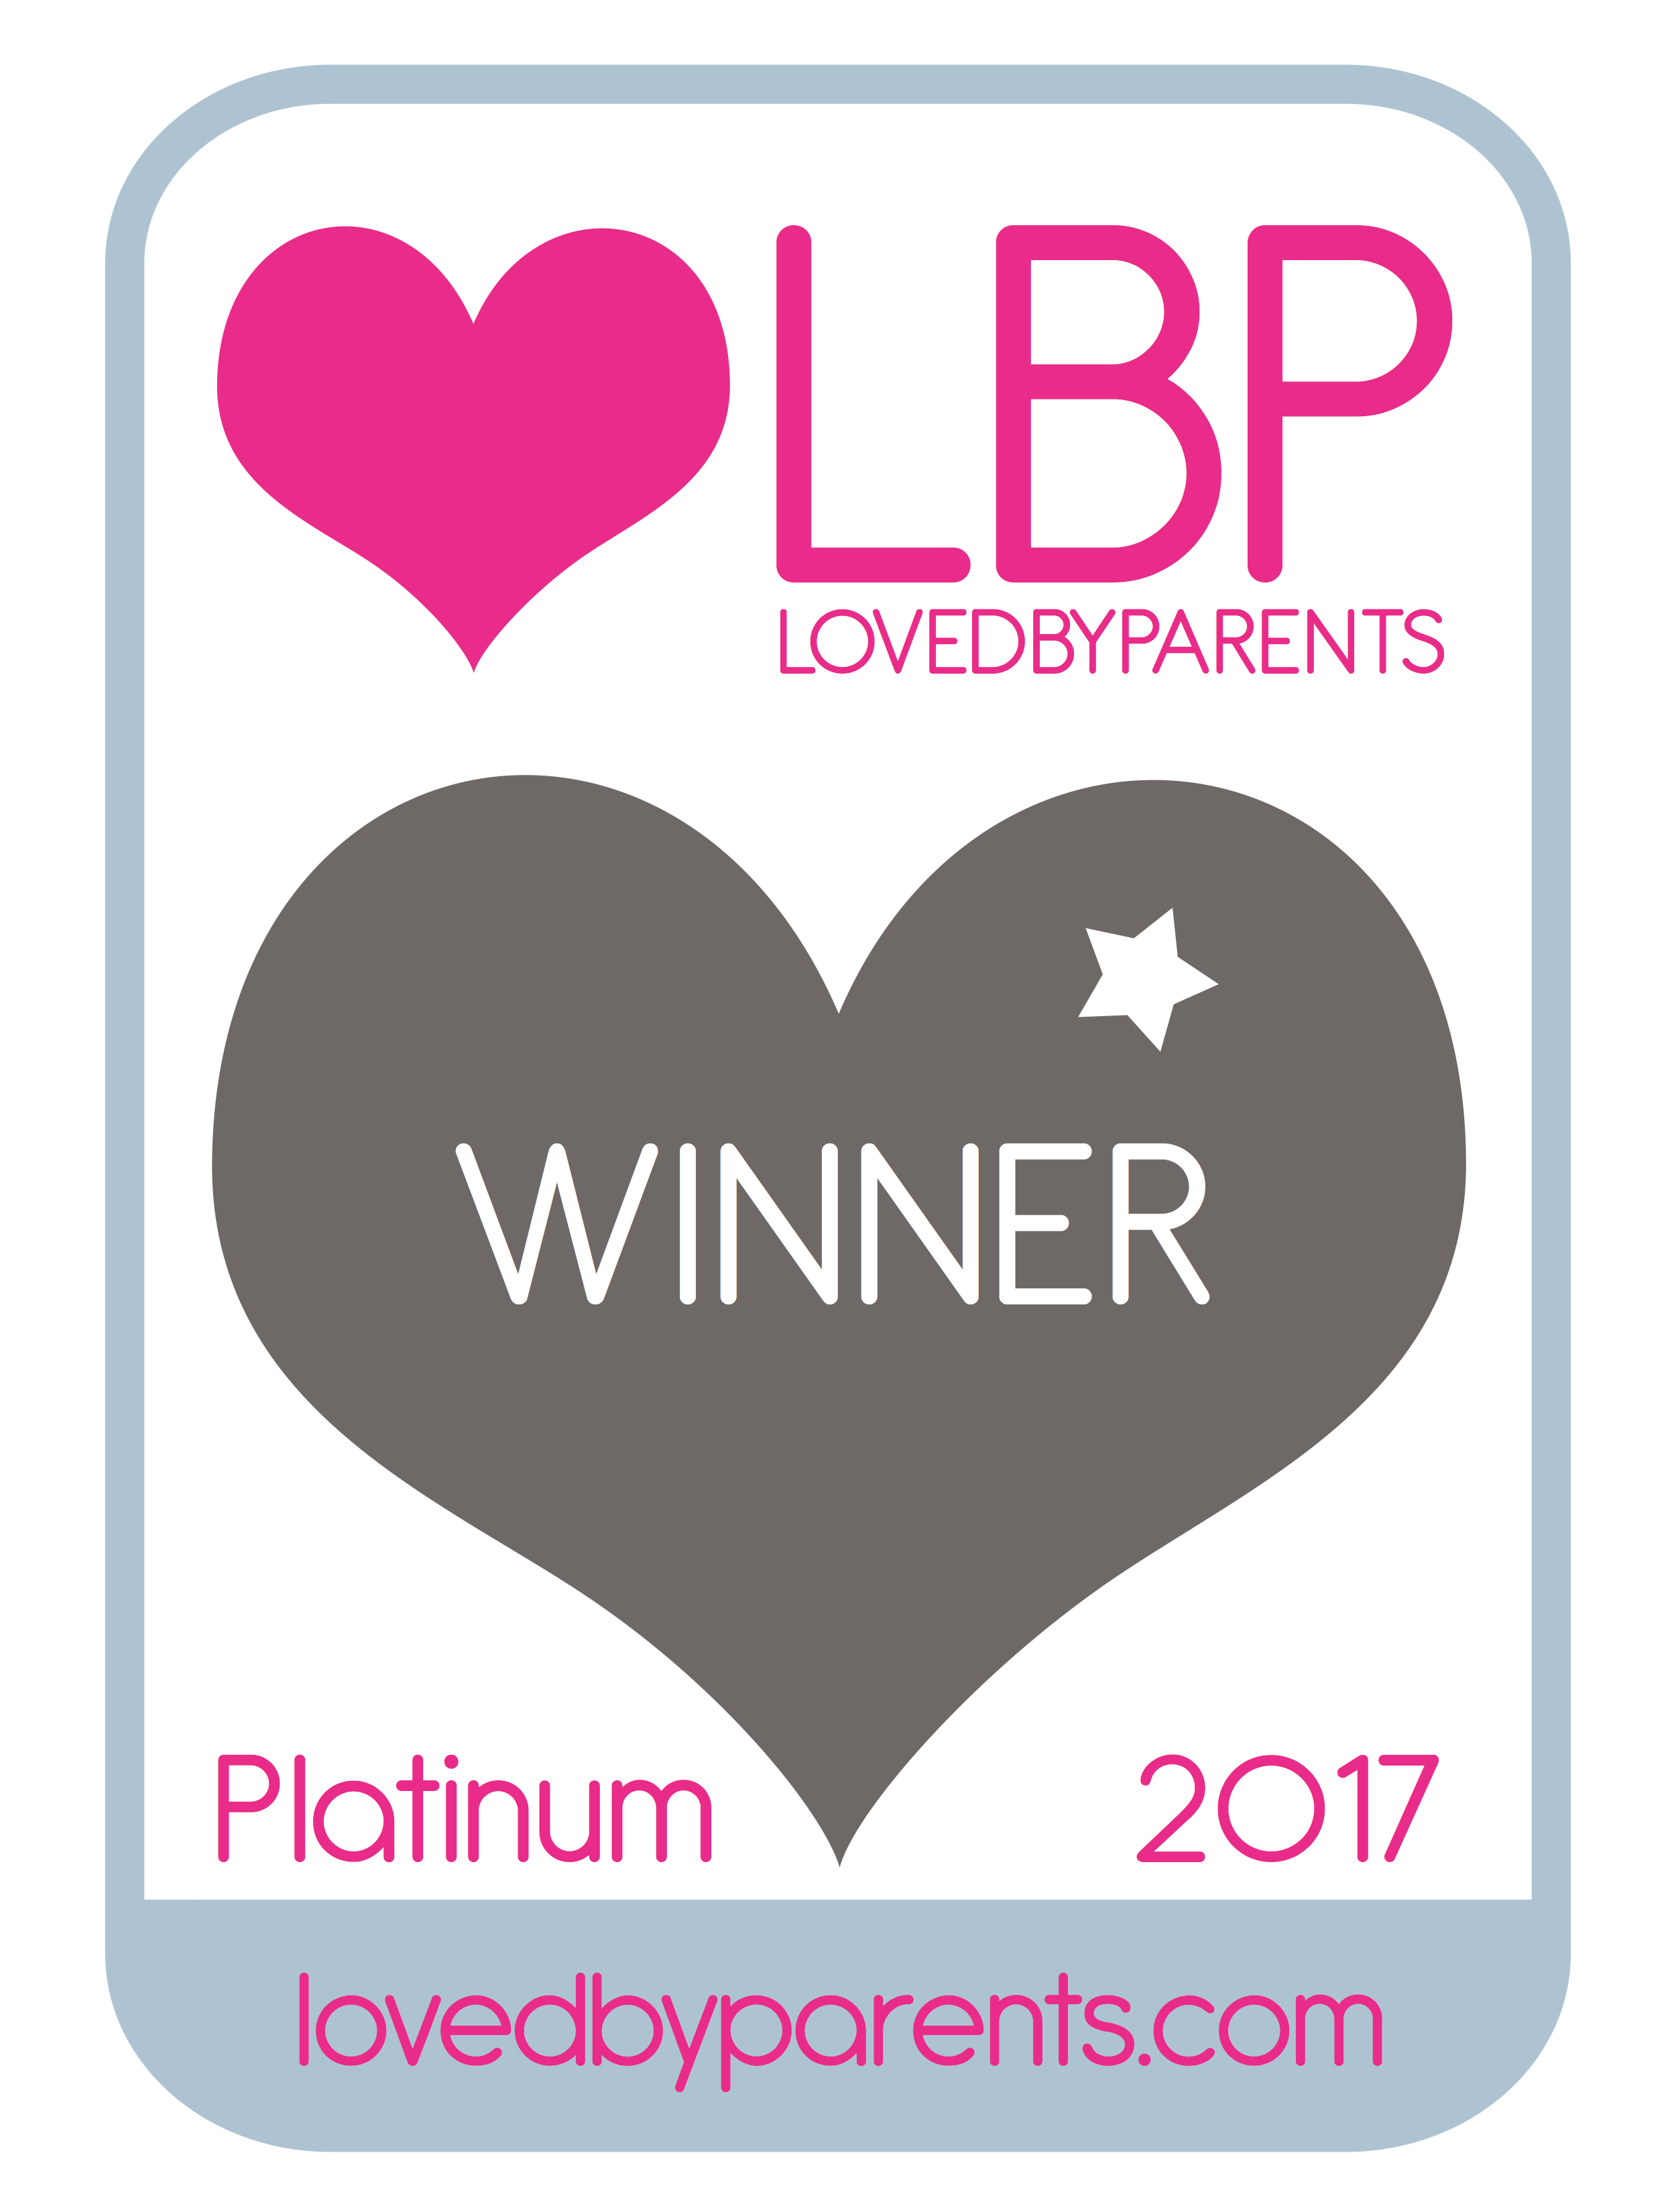 Loved by Parents